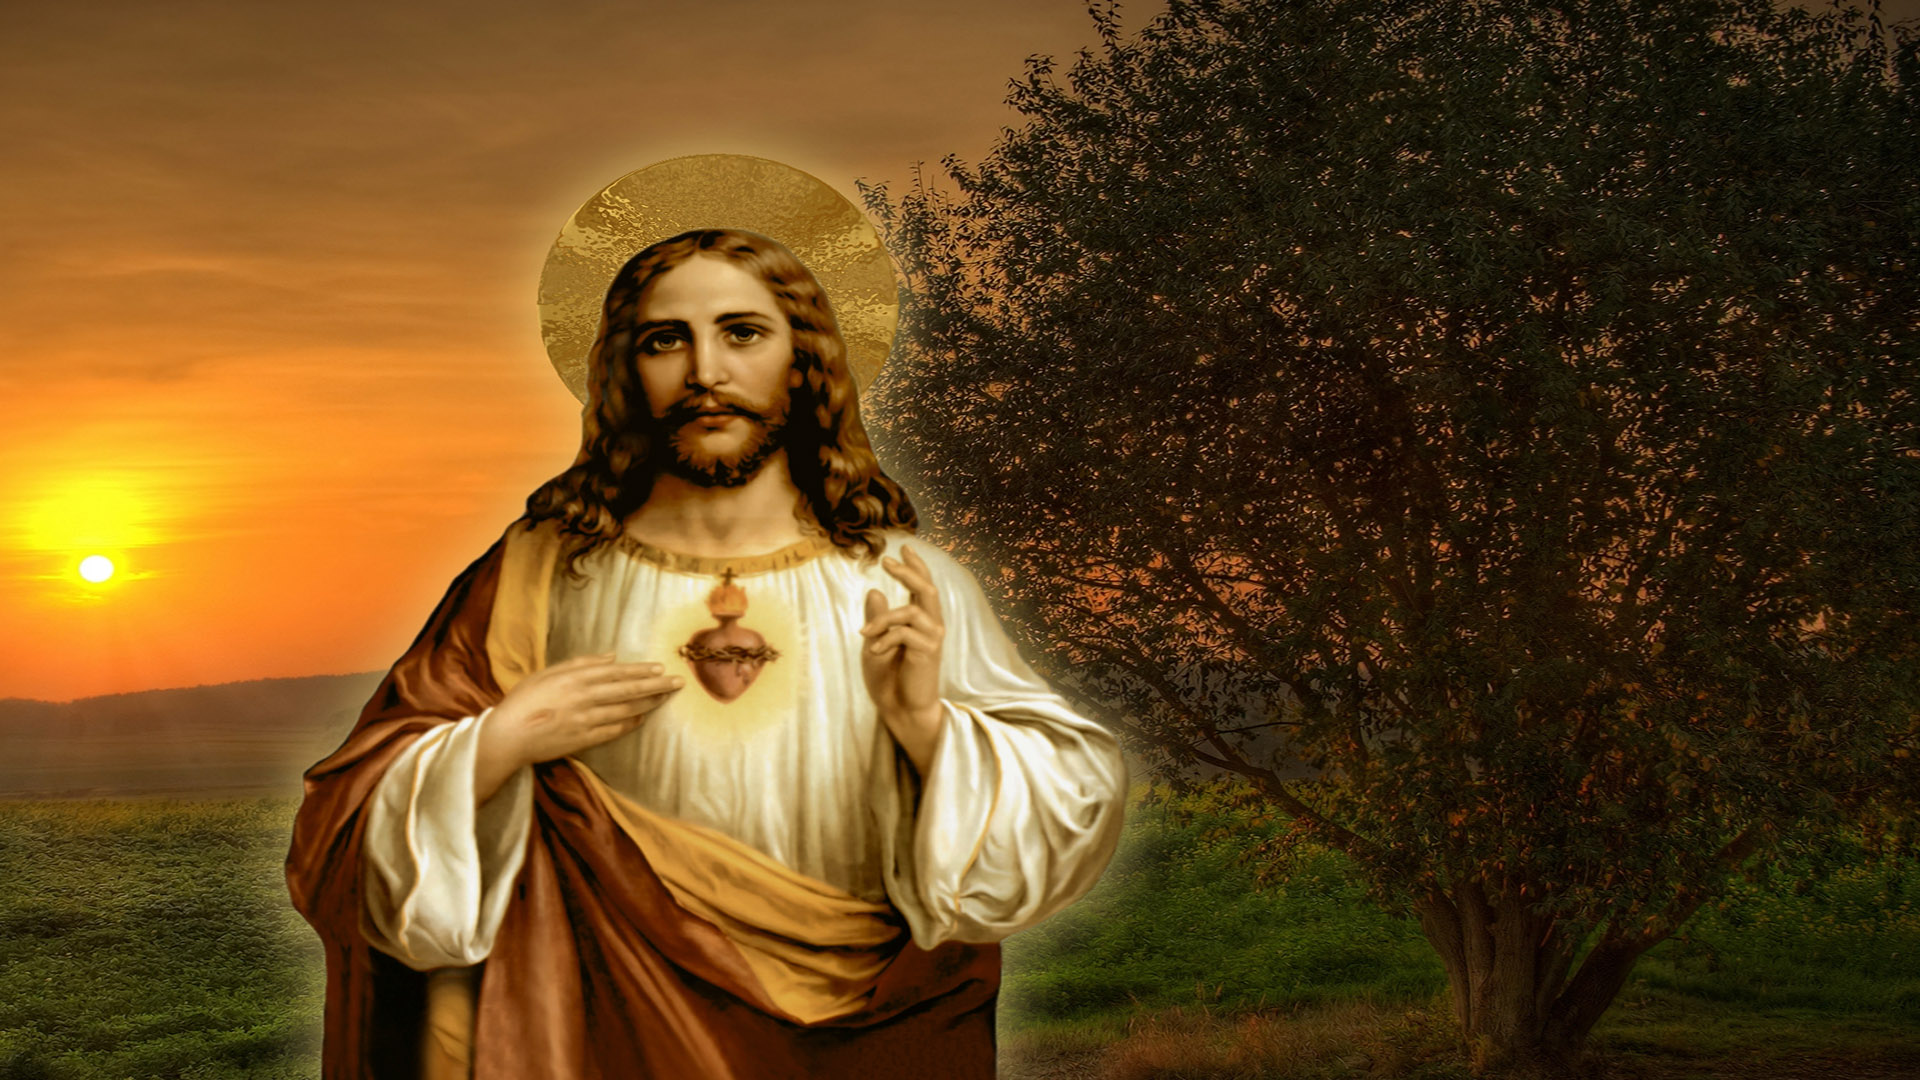 Jesus Christ Images Hd Wallpapers Download